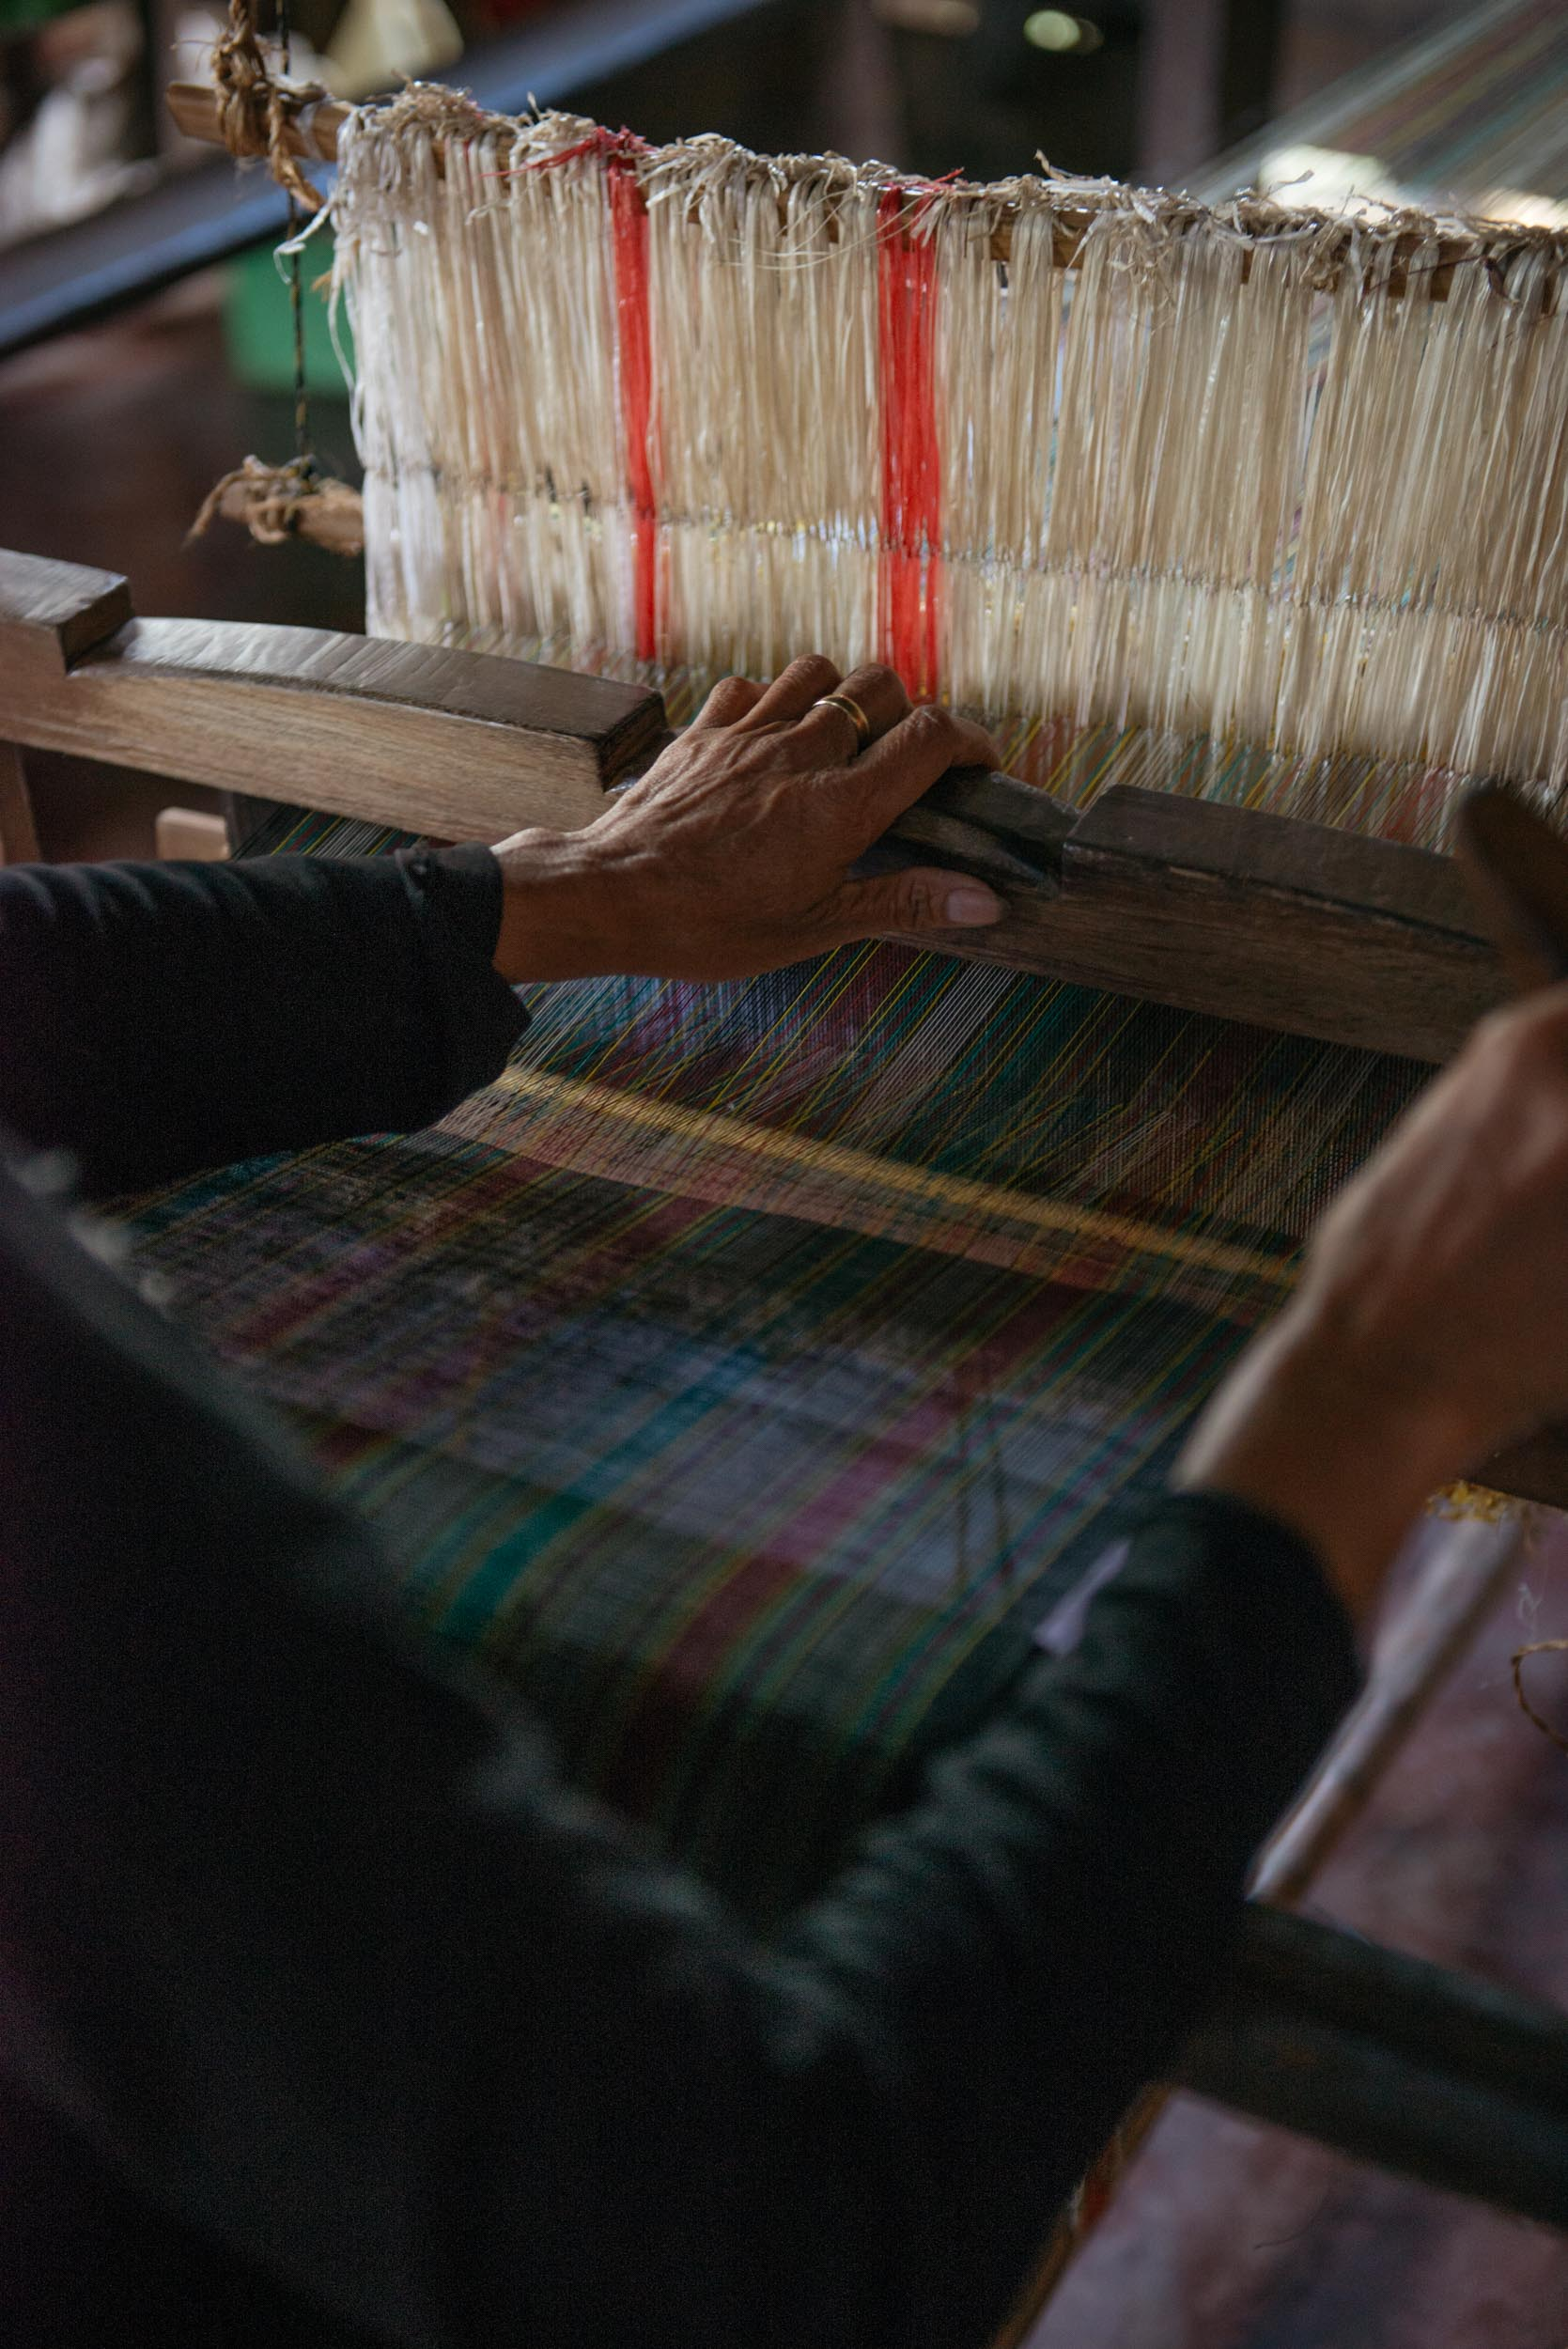 Class A's process doesn't stop in the weaving. It is further polished and waxed. The  paglilimpyo  or cleaning of the finished Hinabol involves cutting excess thread on the surface of the textile, waxing itwith beeswax, and lastly ironing with  bayukong  or a shell for a shiny and smooth finish. Class A Hinabol textiles are sold by the Sunflower Organization to different small and big entrepreneurs around Bukidnon, Cagayan de Oro, Manila, and even international countries.